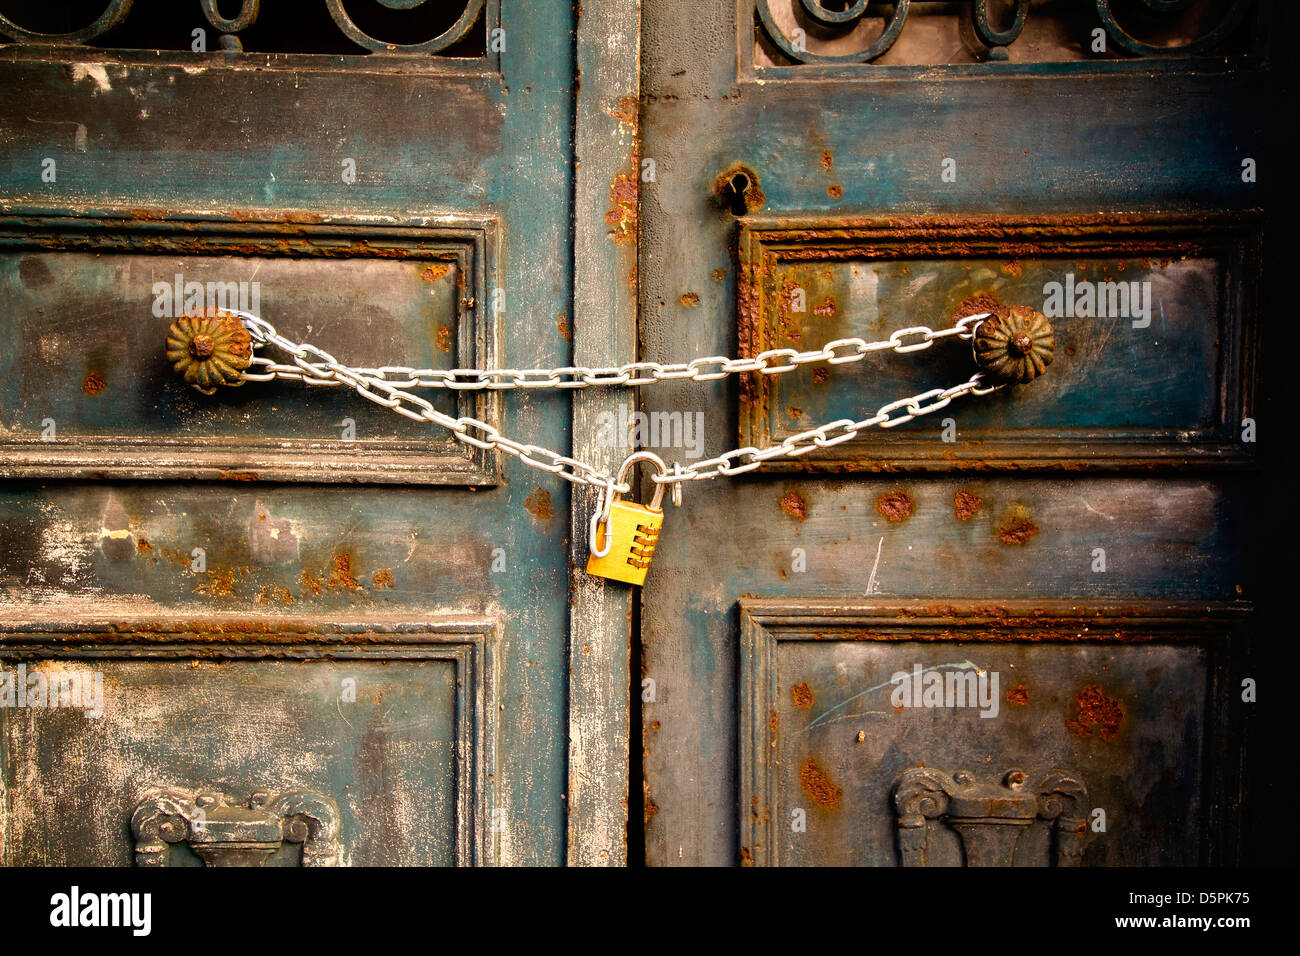 Le Meilleur The Locked Door Brand Discounts Ce Mois Ci